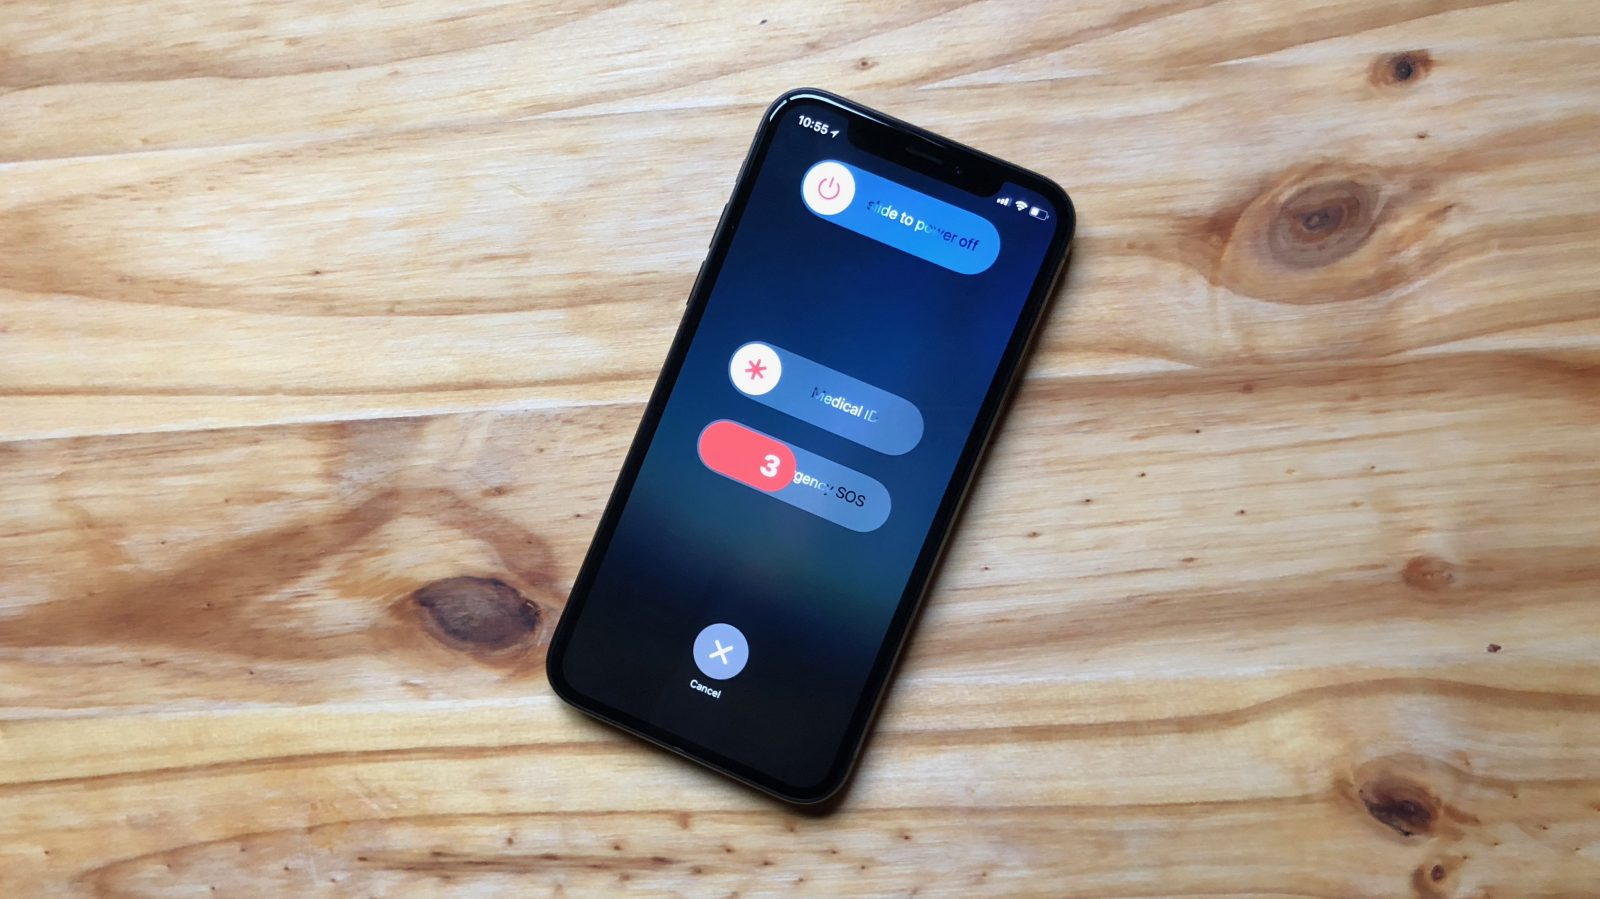 iPhone X: How to not accidentally call 911 - 9to5Mac